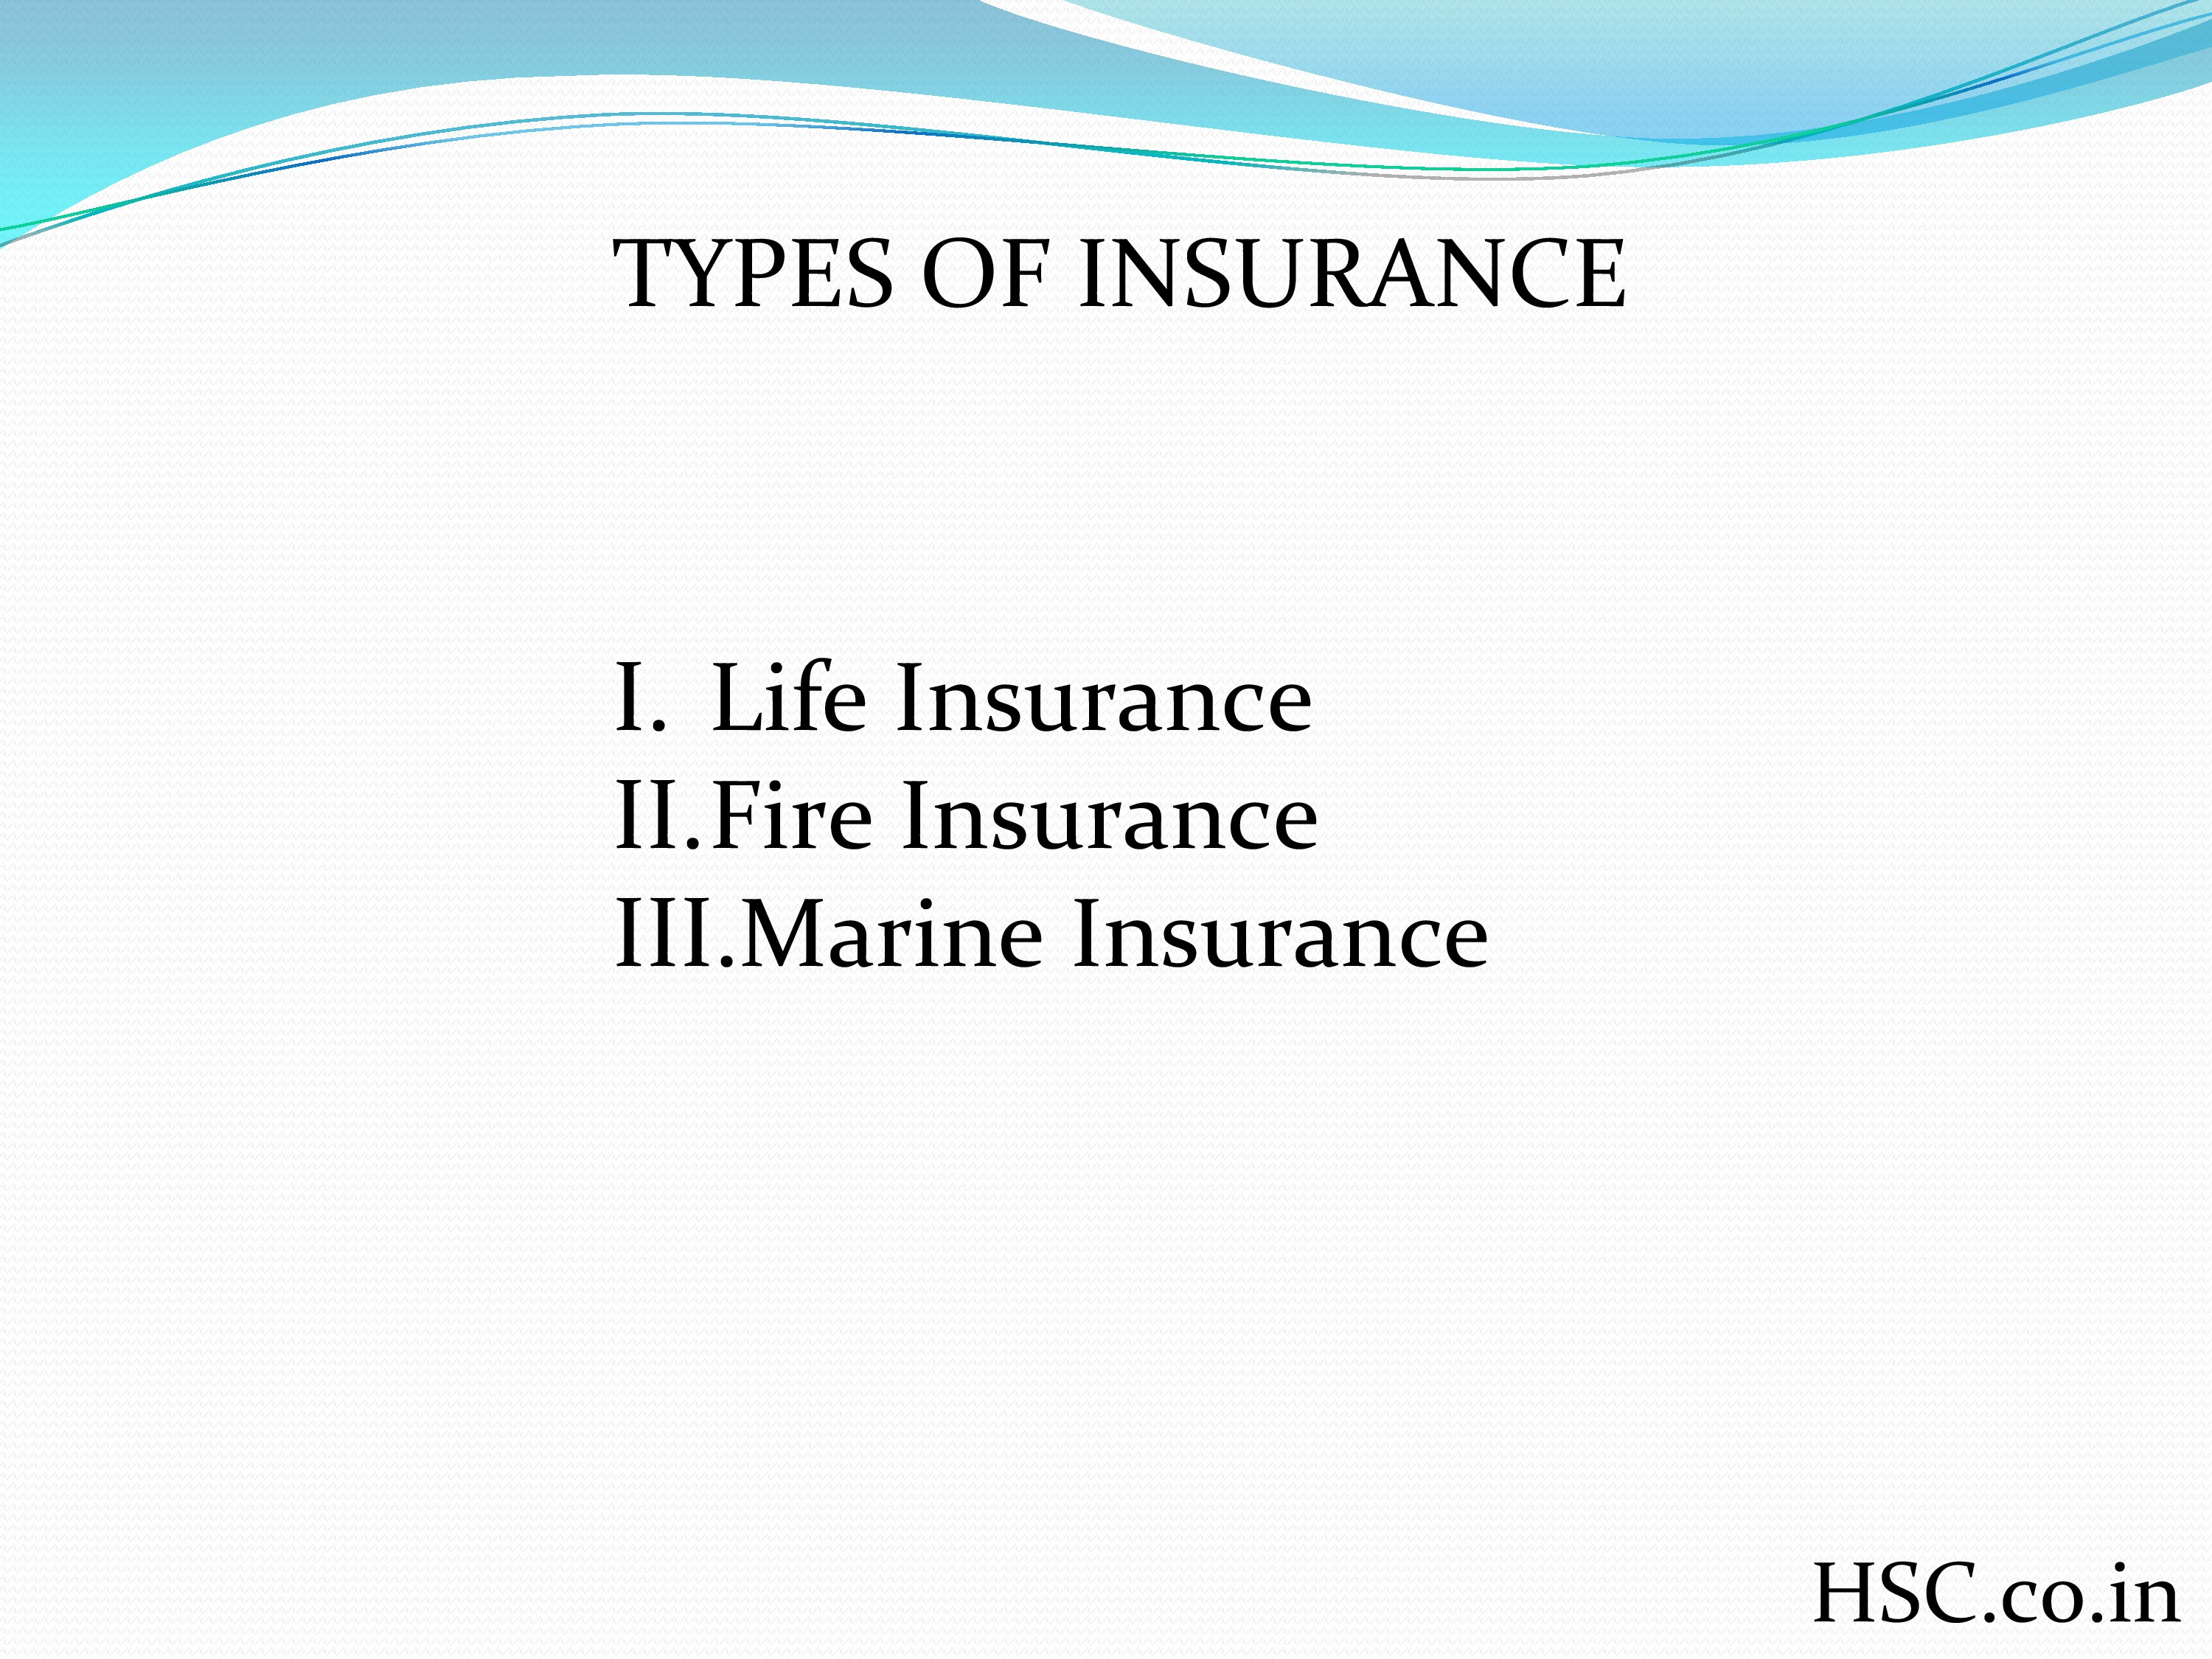 types of inusrance